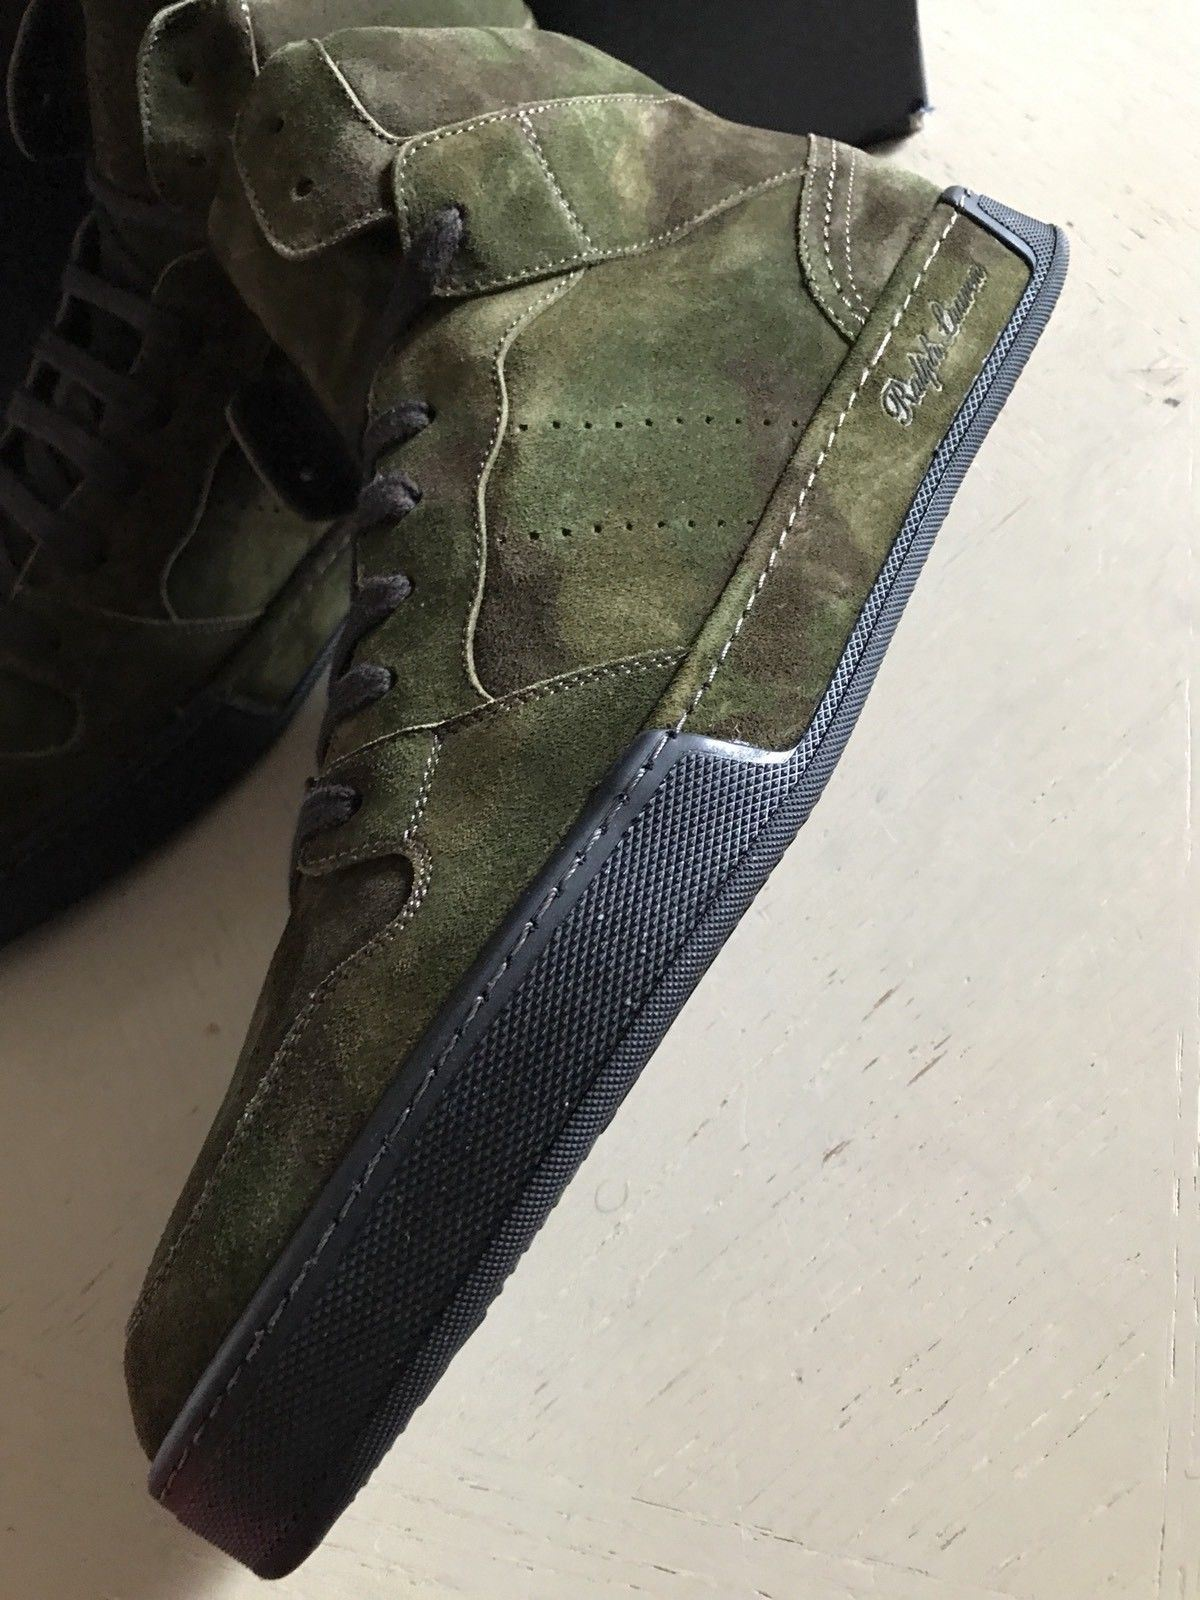 New $895 Men's Ralph Lauren Purple Label Suede Sneakers Boots Shoes Green 9 US - BAYSUPERSTORE